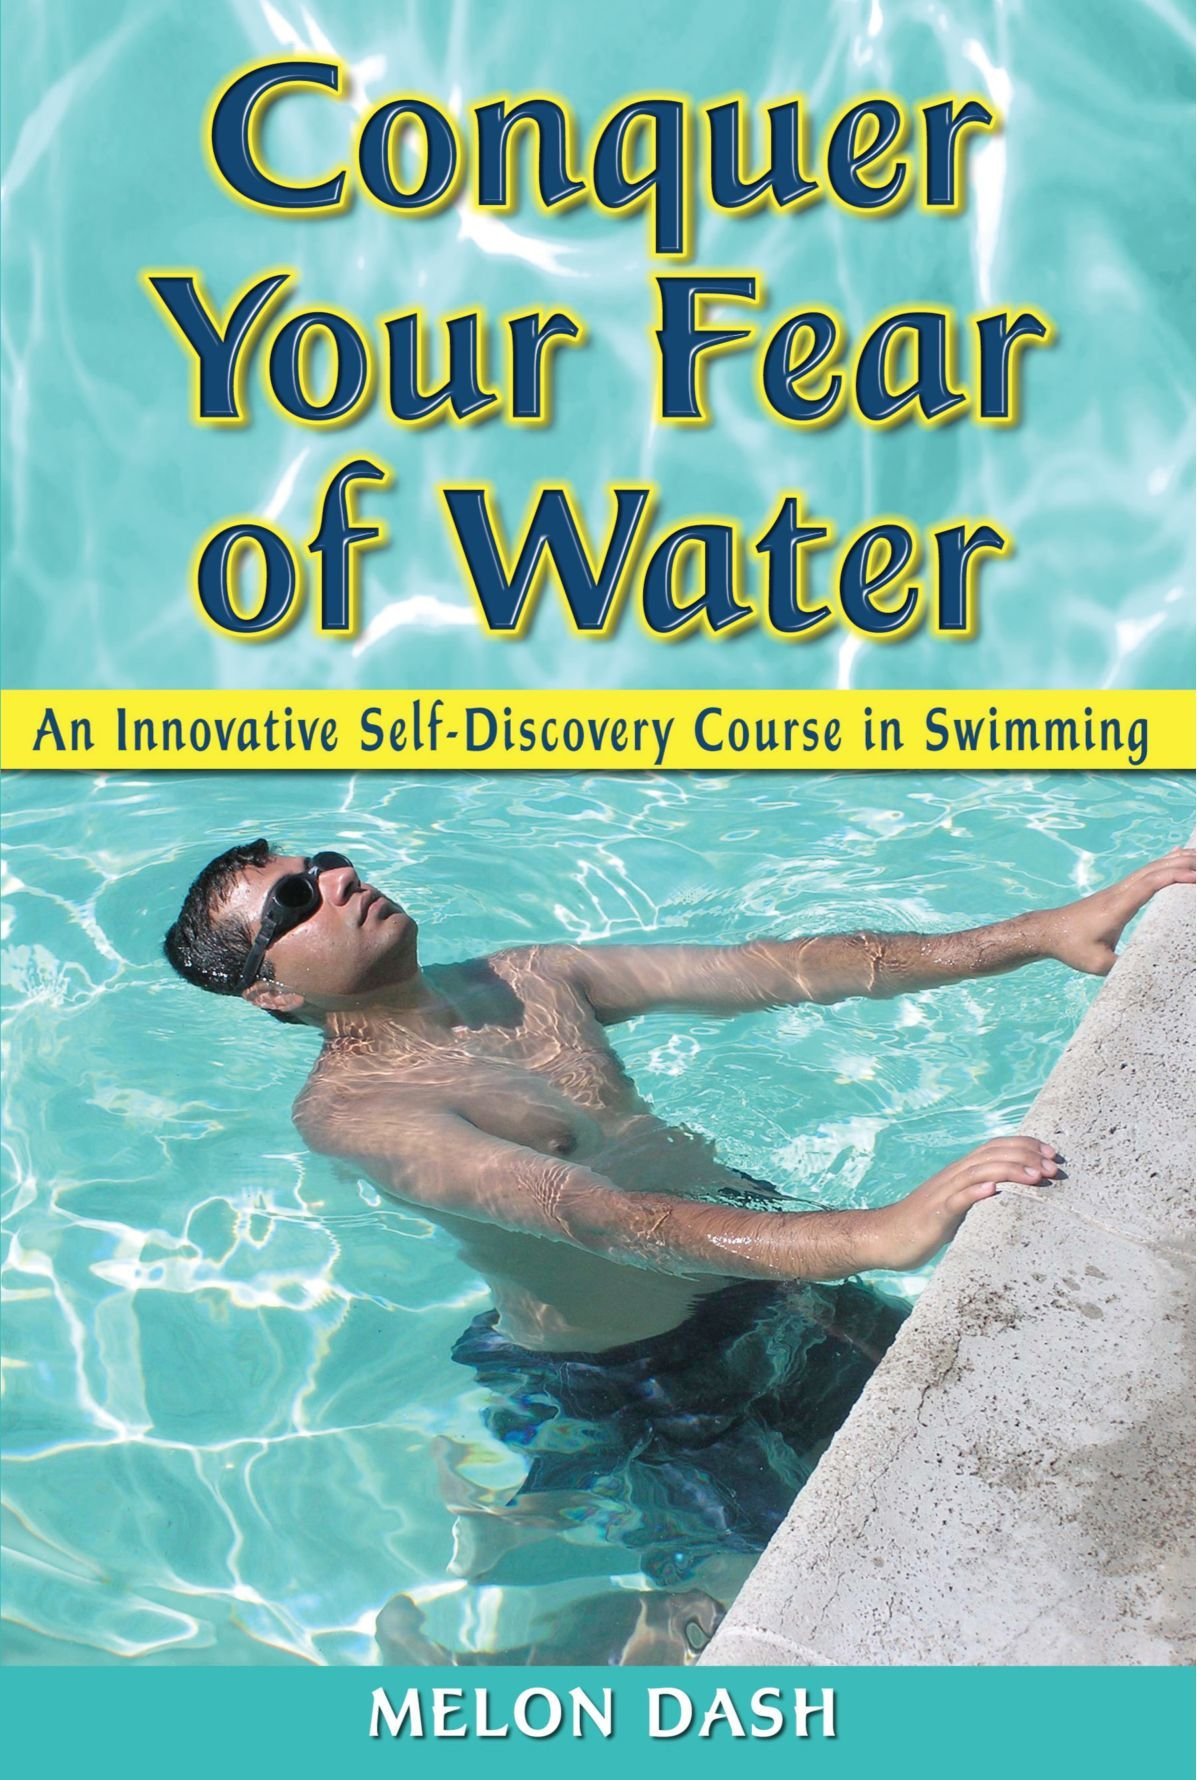 Conquer Your Fear Of Water: An Innovative Selfdiscovery Course In  Swimming: Melon Dash: 9781420864441: Amazon: Books